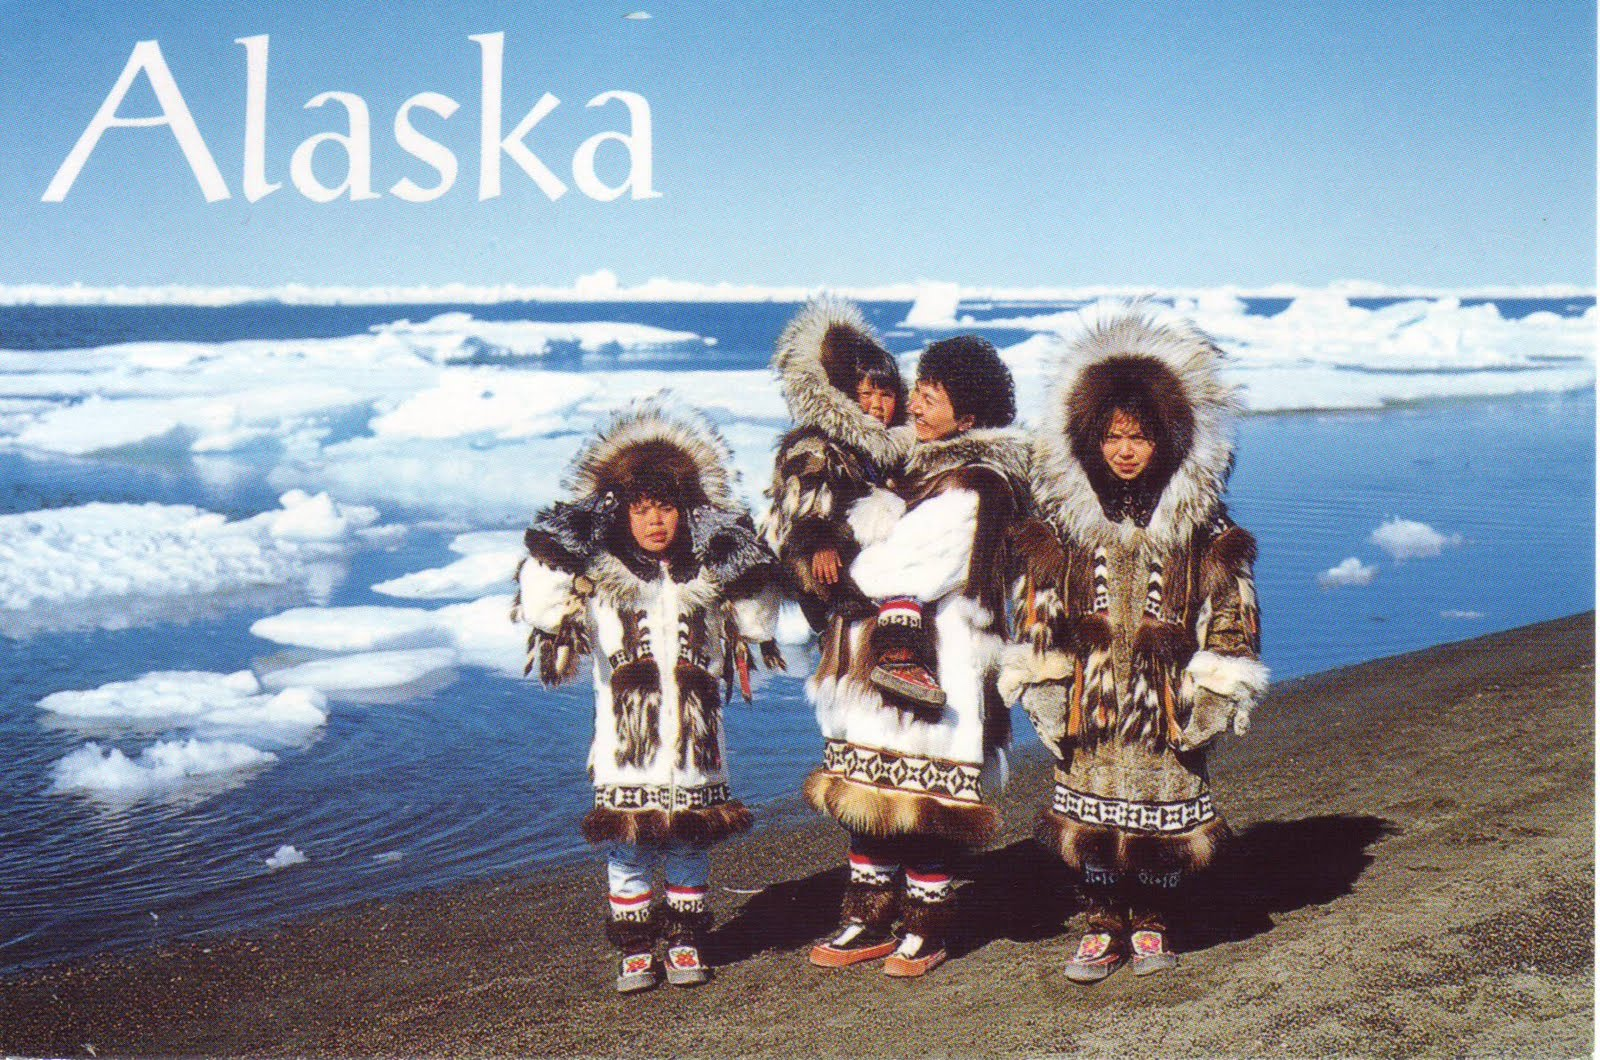 people of alaska and their eskimo culture Once known as eskimos, the inuit inhabit the arctic region, one of the most forbidding territories on earth occupying lands that stretch 12,000 miles from parts of siberia, along the alaskan coast, across canada, and on to greenland, the inuit are one of the most widely dispersed people in the world, but number only about 60,000 in population.